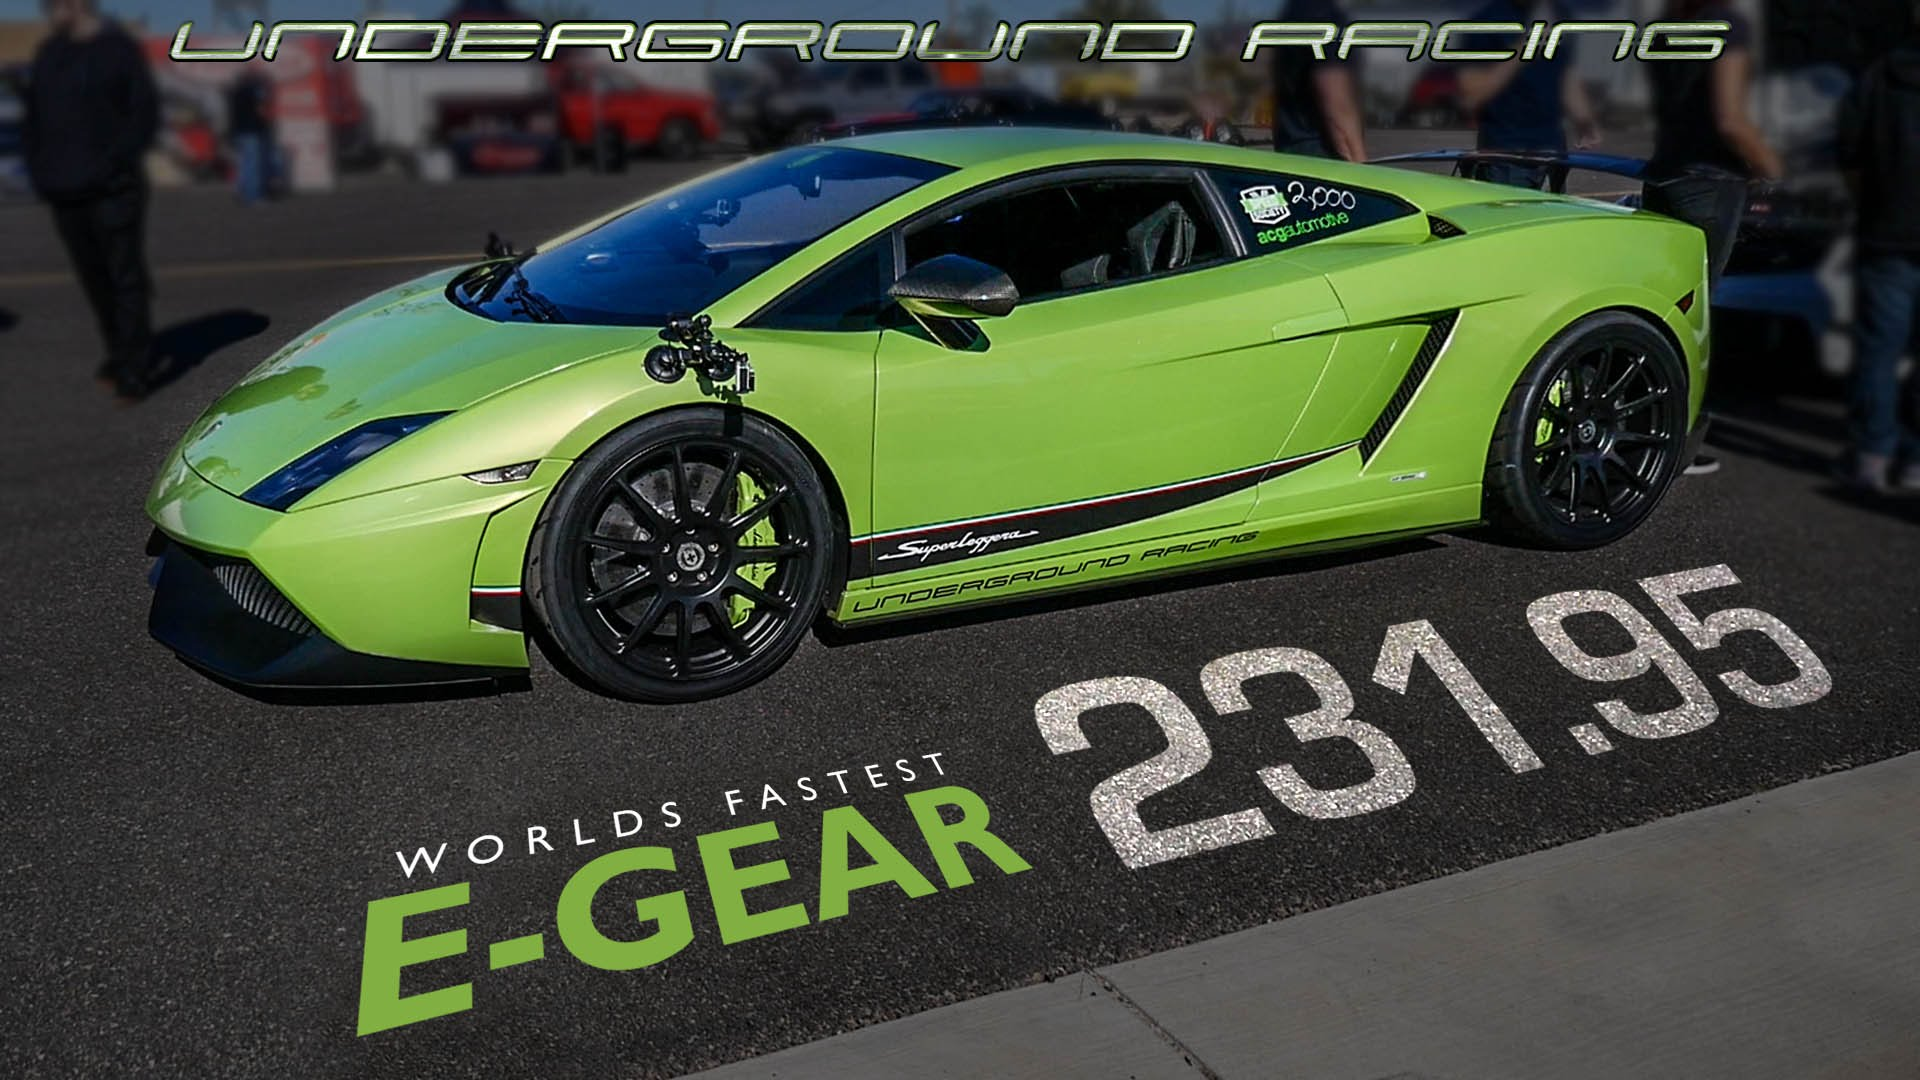 World's fastest modified Lamborghini Gallardo E-Gear